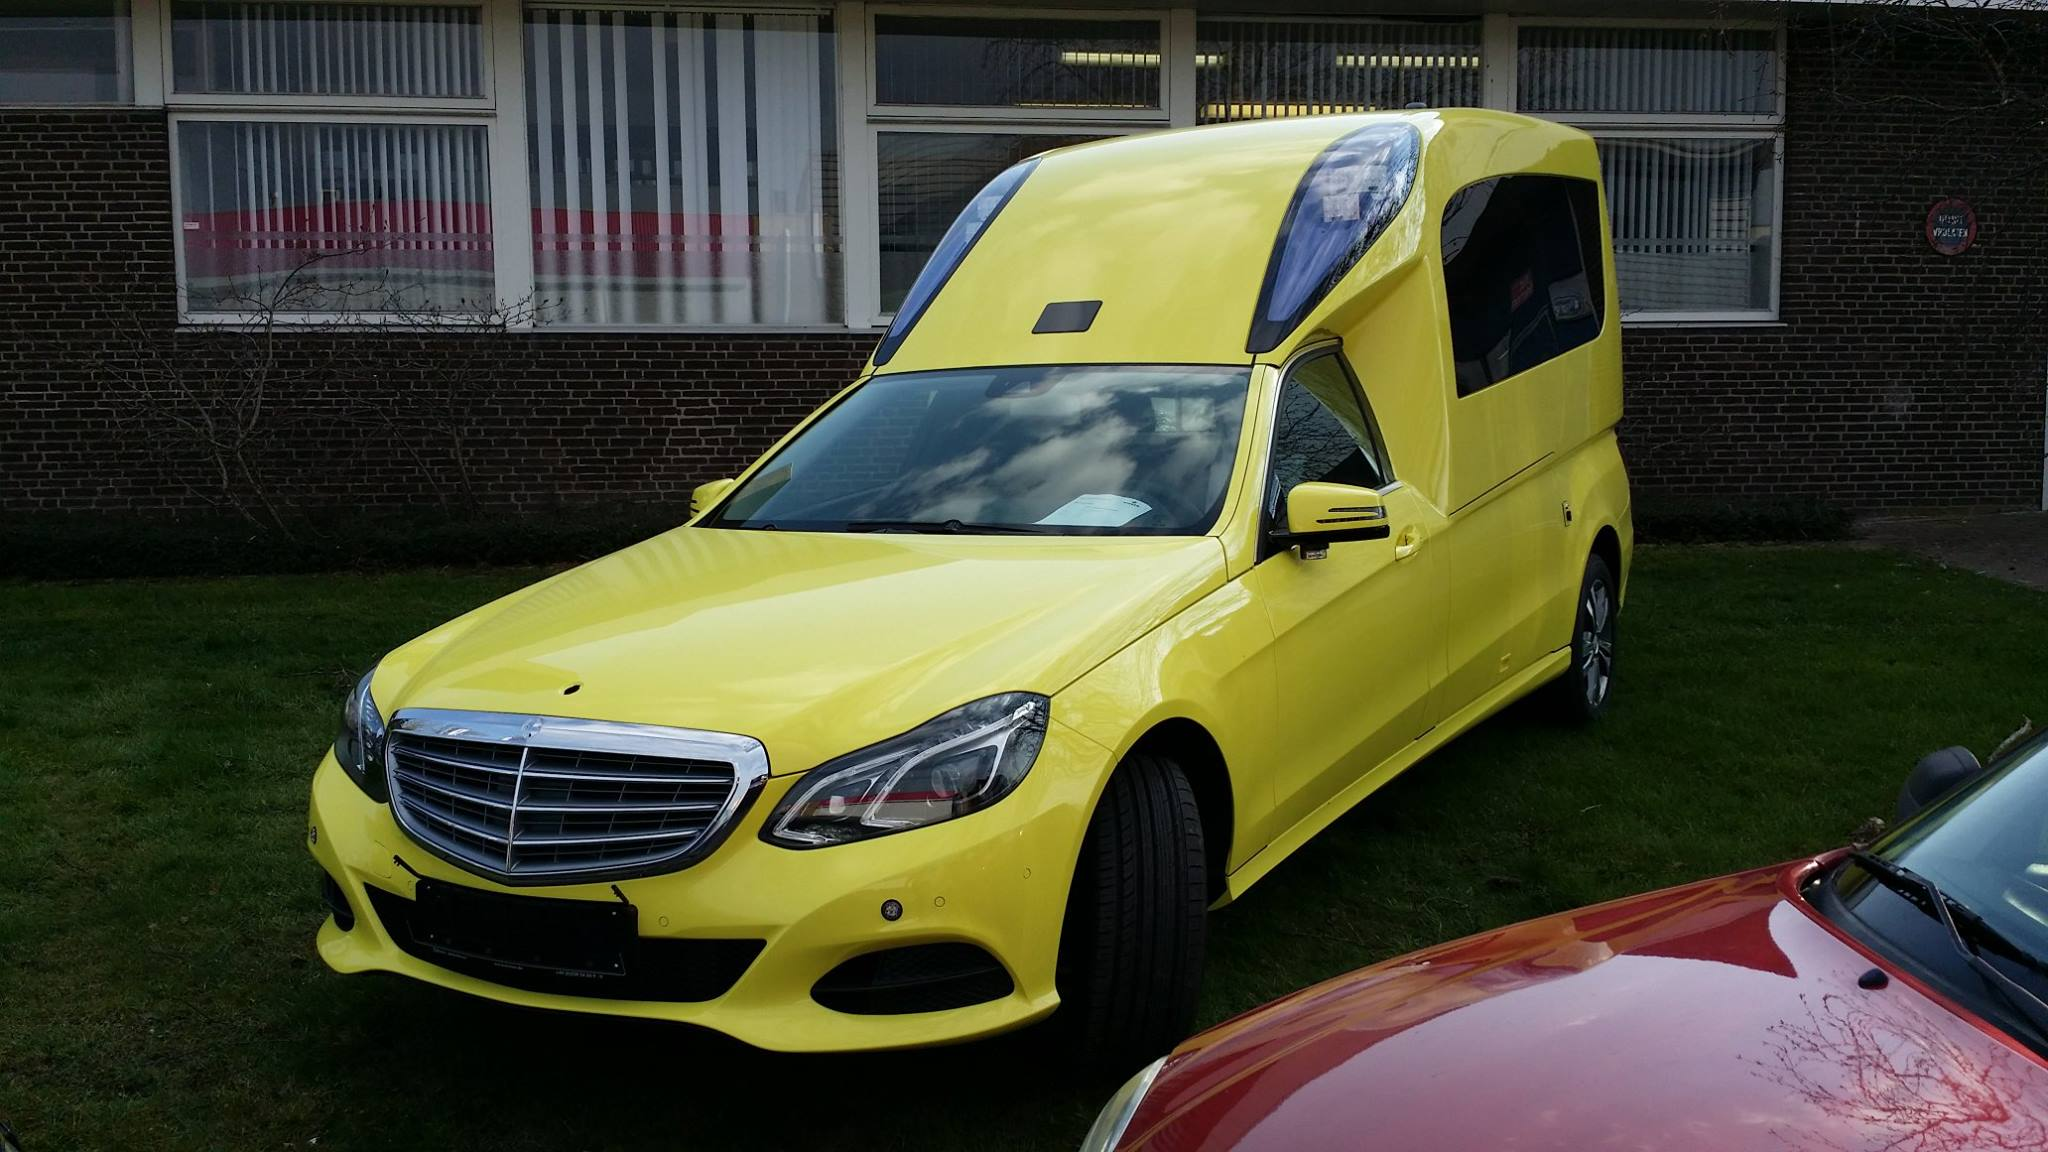 nieuwe mercedes benz e klasse met visser ambulance opbouw alex miedema. Black Bedroom Furniture Sets. Home Design Ideas